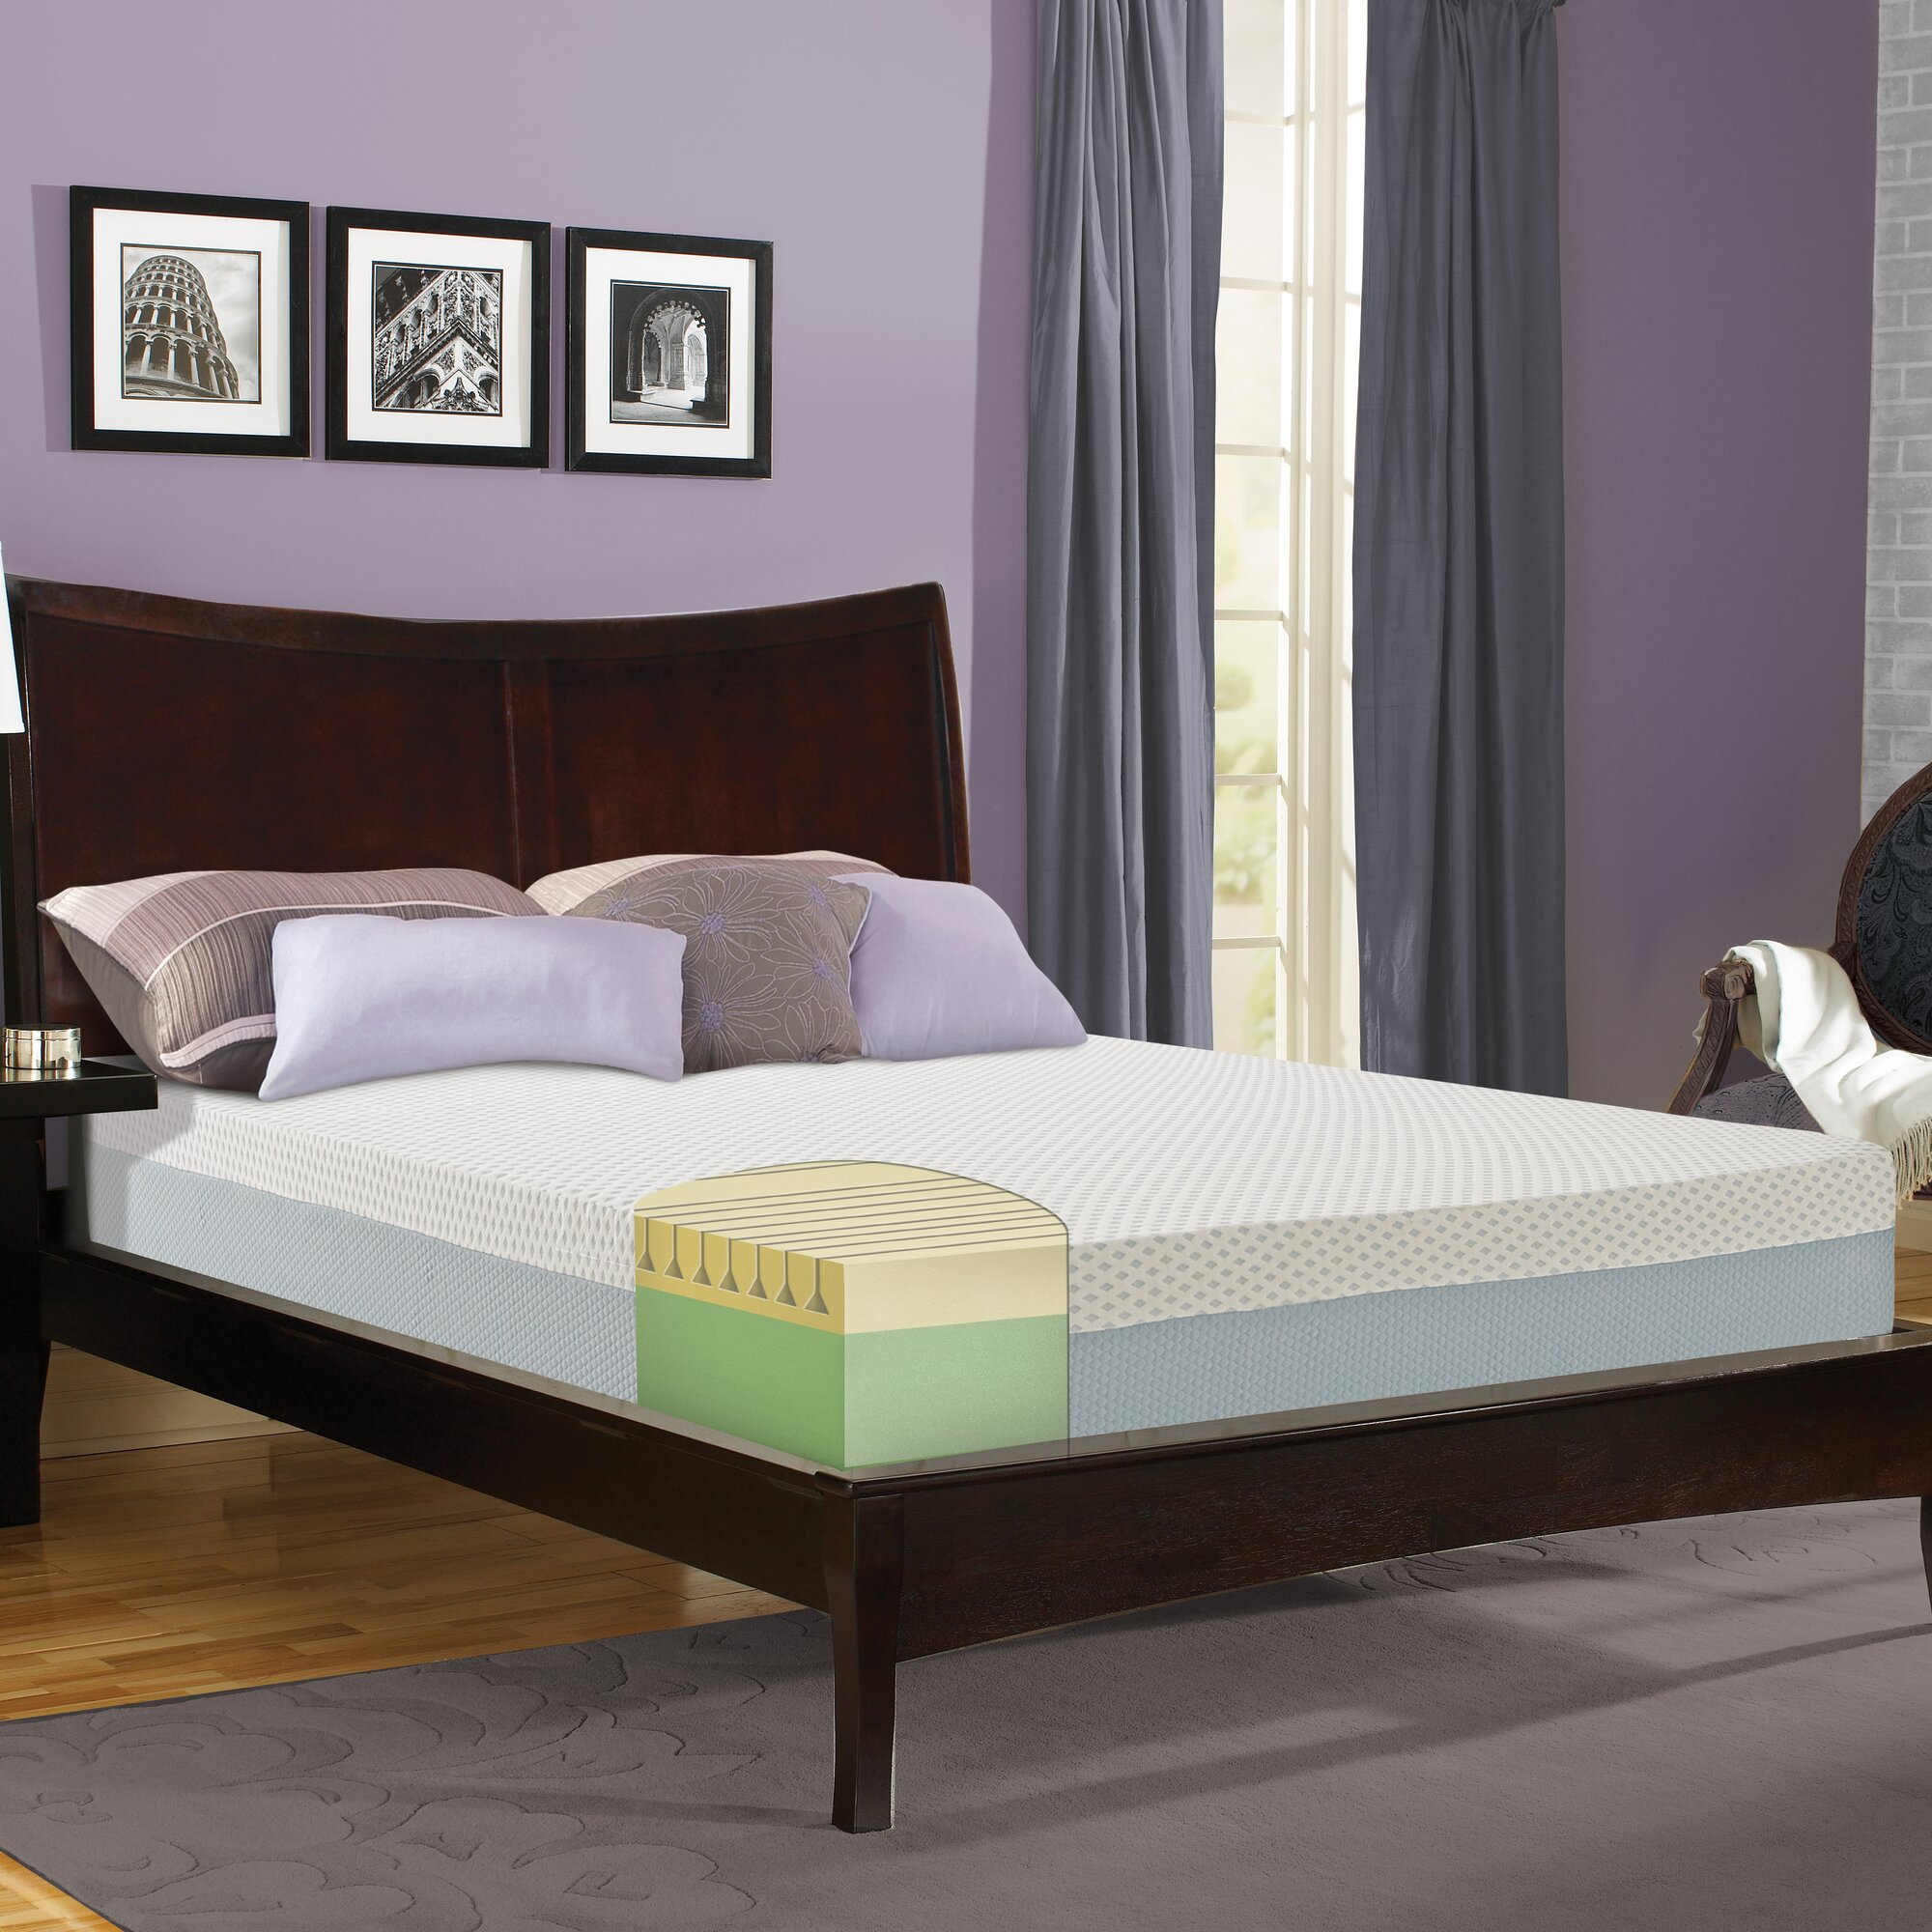 assemble mattress futons to youtube a watch day how review futon